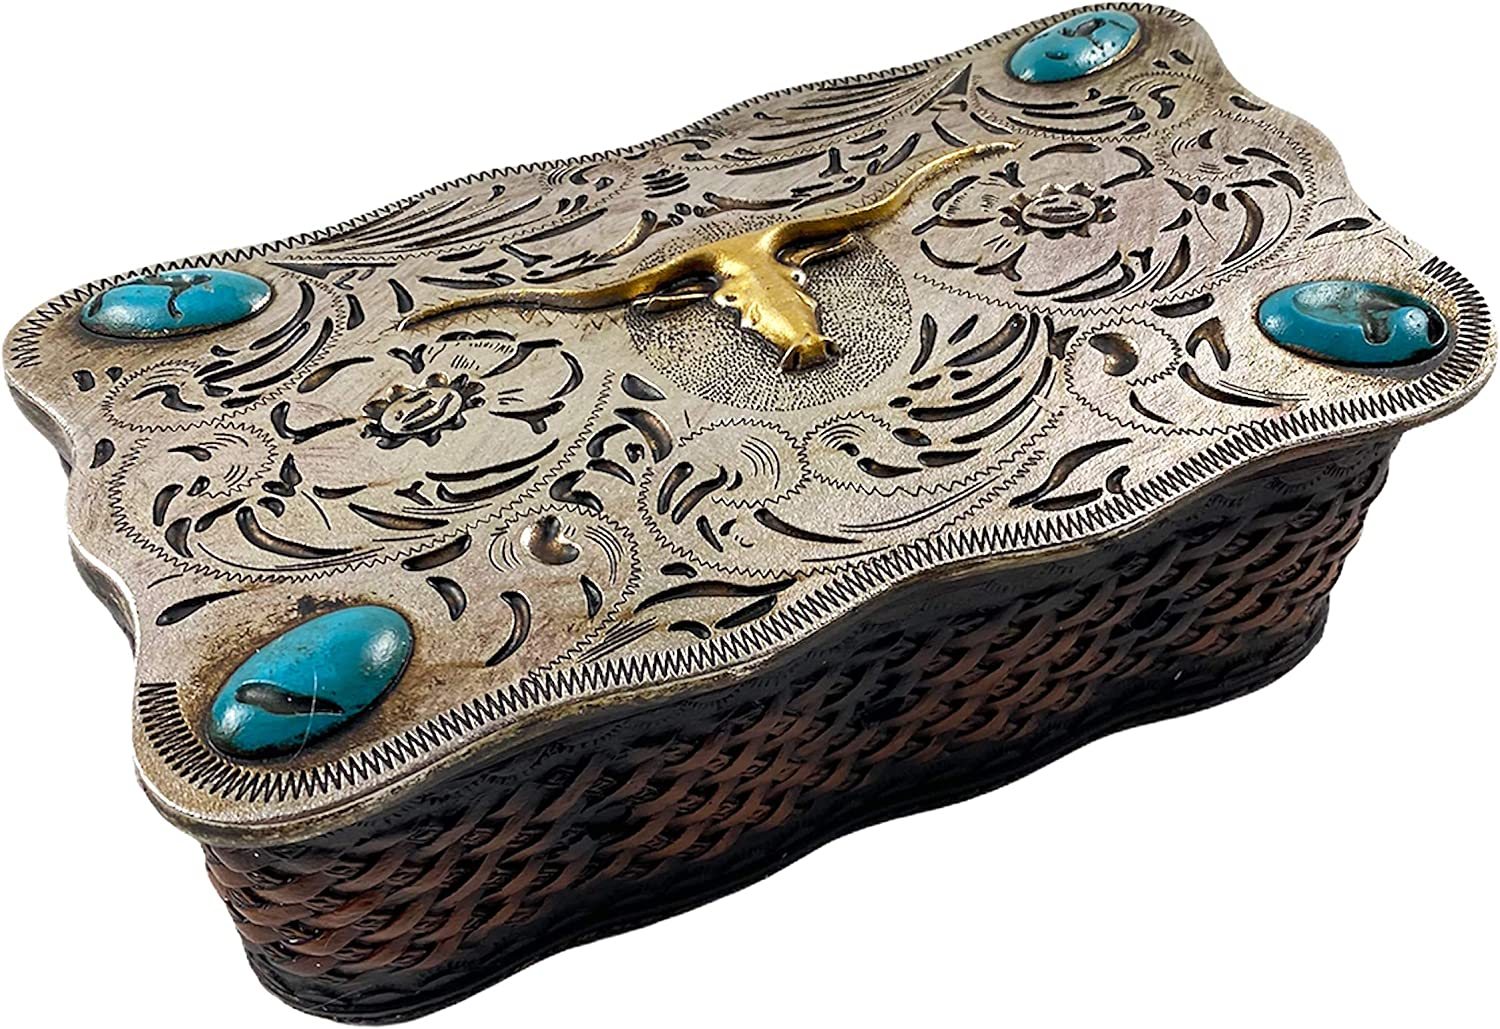 Urbalabs Silver and Teal With Longhorn Western Jewelry Box Change Dish Trinket Box Rustic Decor Jewelry Boxes Horseshoe House Warming Presents and Hunting Country Decor Storage Box (Silver Teal Longhorn)